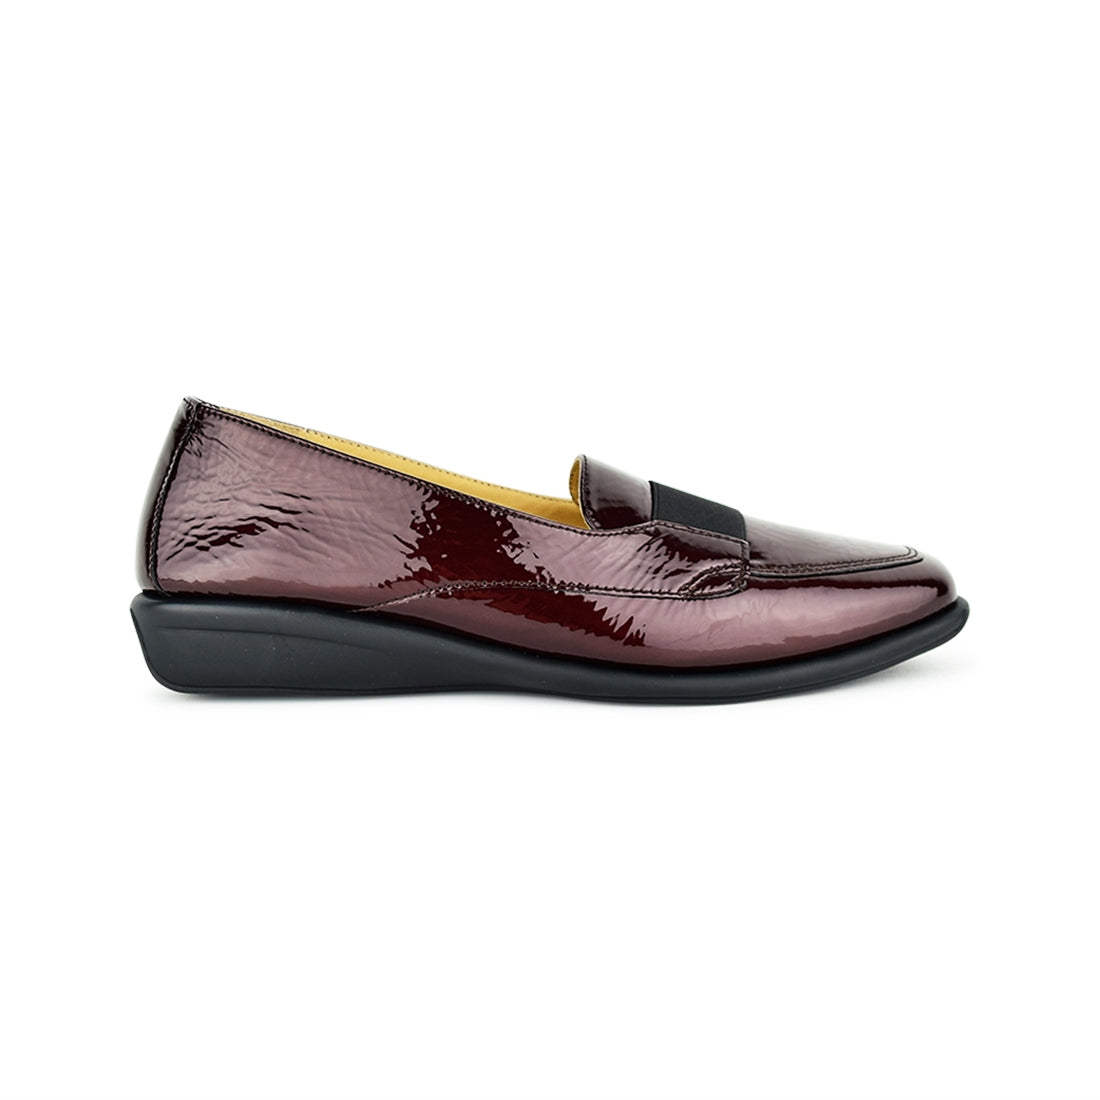 ALECTO - Relax Closed Shoe Burgandy